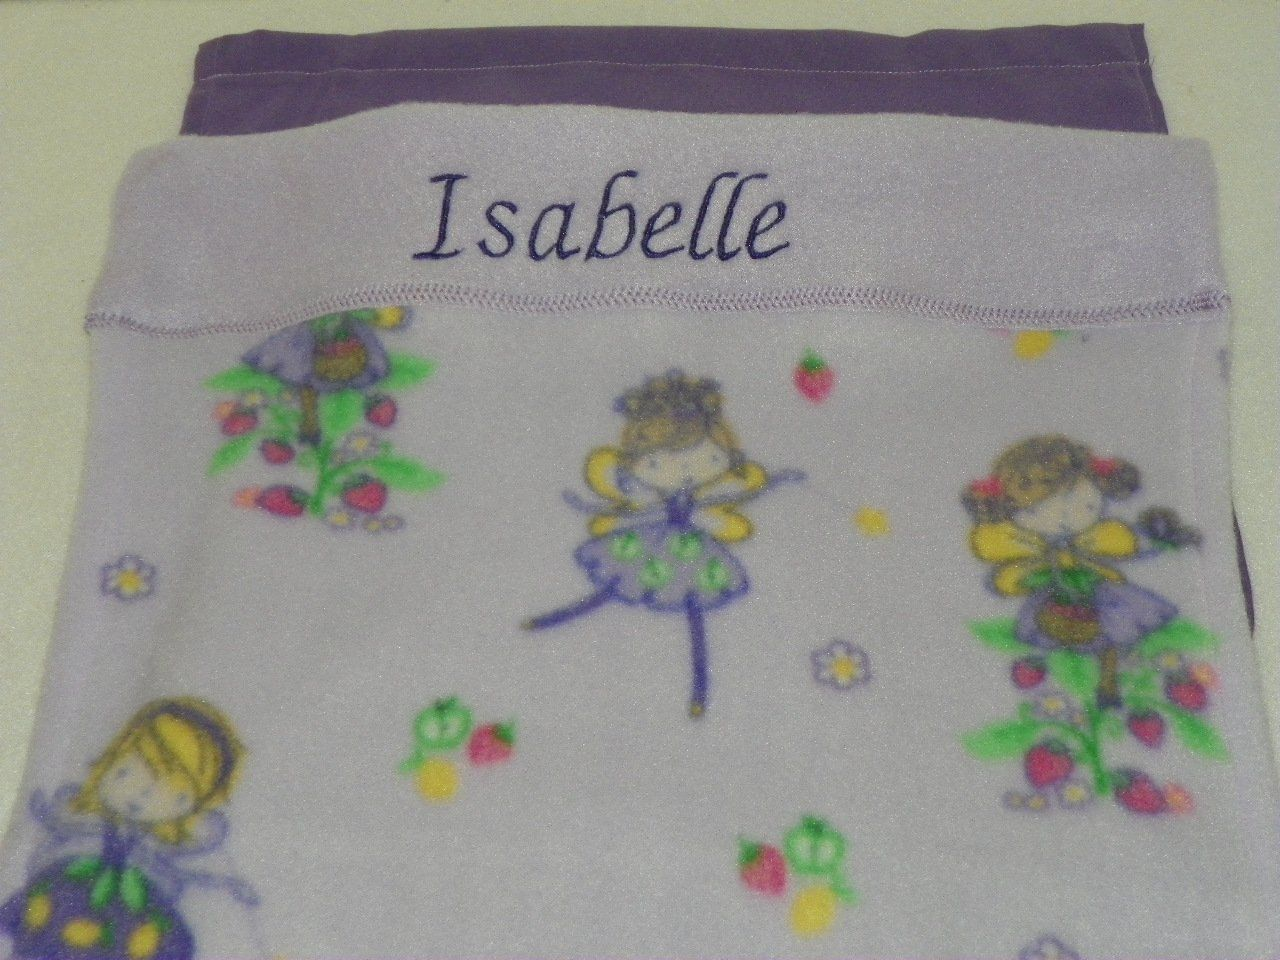 Personalized u monogrammed with name isabelle lavender fairy